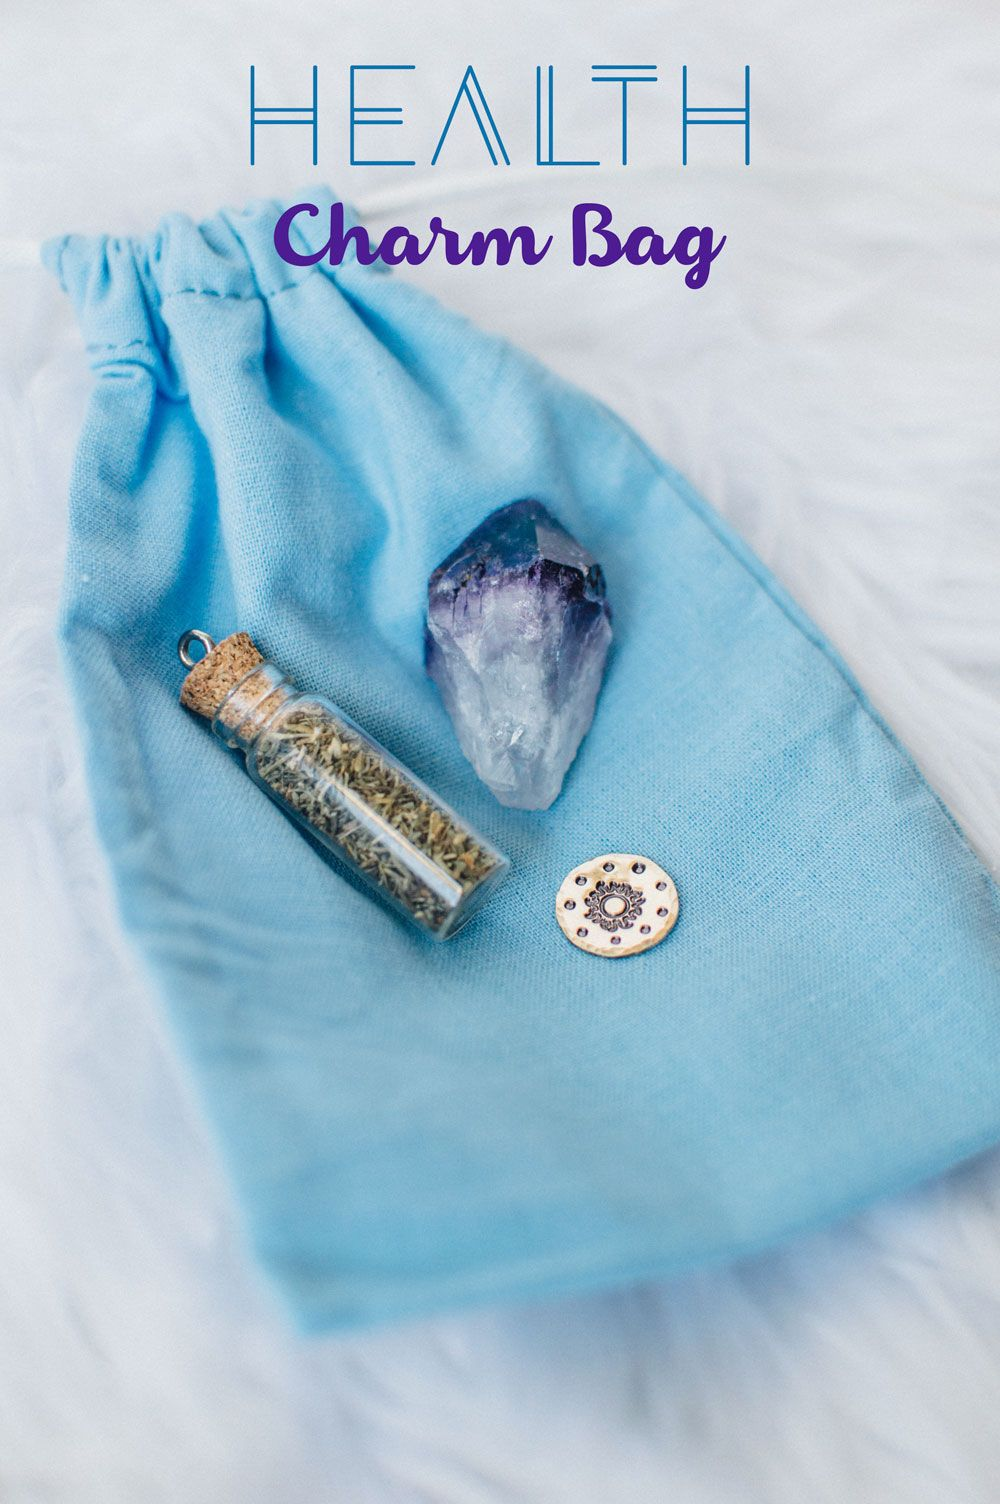 Magic Charm Bags for Protection, Love, Luck & Health | crystals